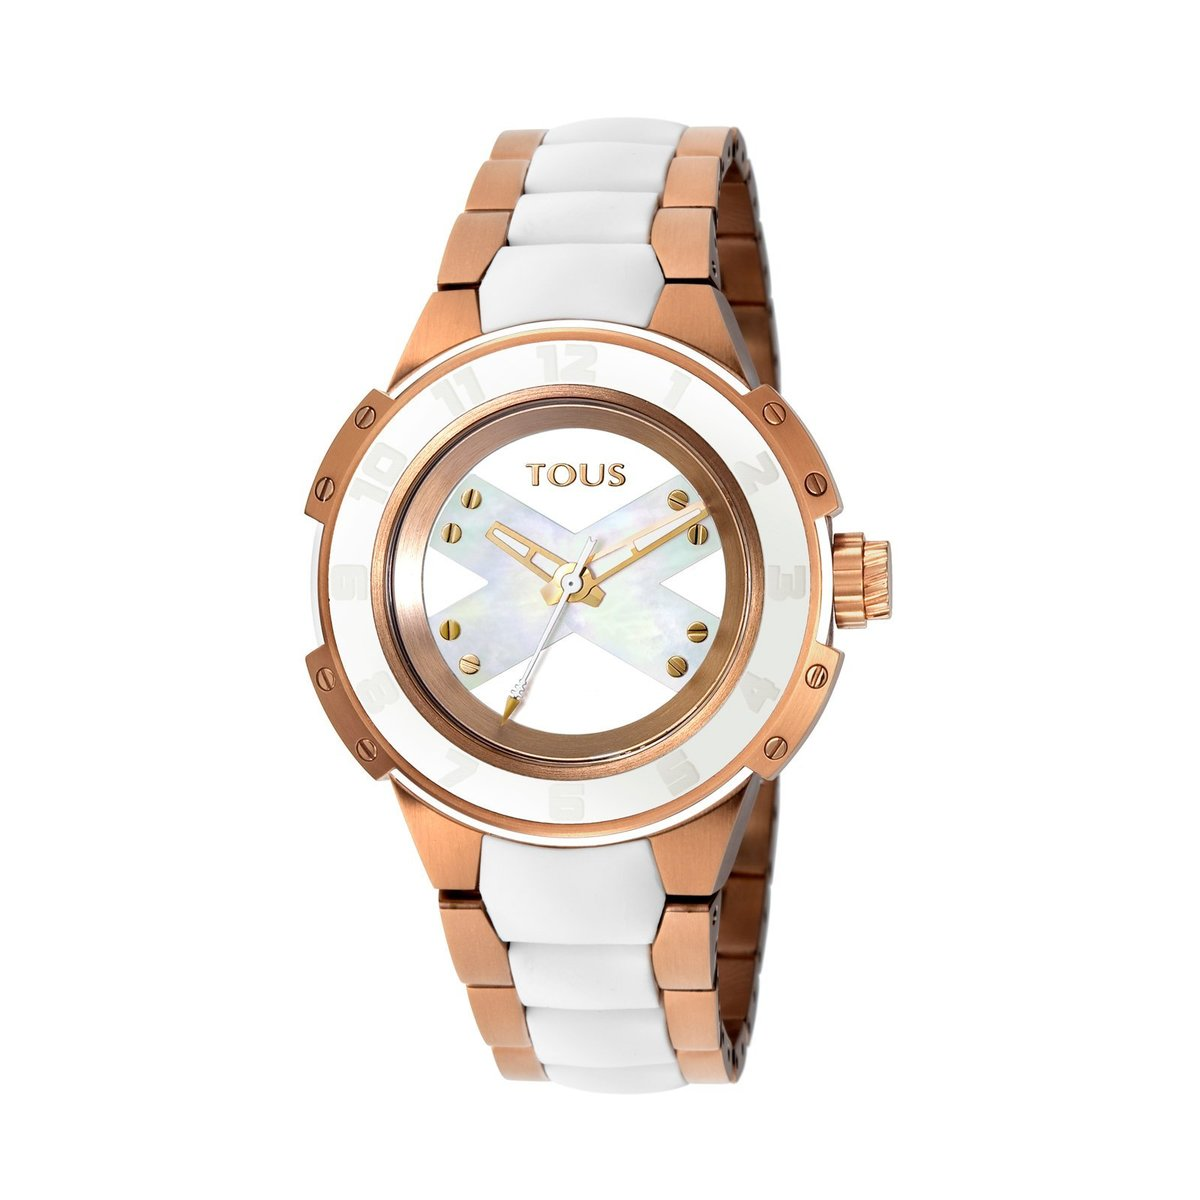 Two-tone pink/white IP Steel Xtous Lady Watch with white Silicone strap